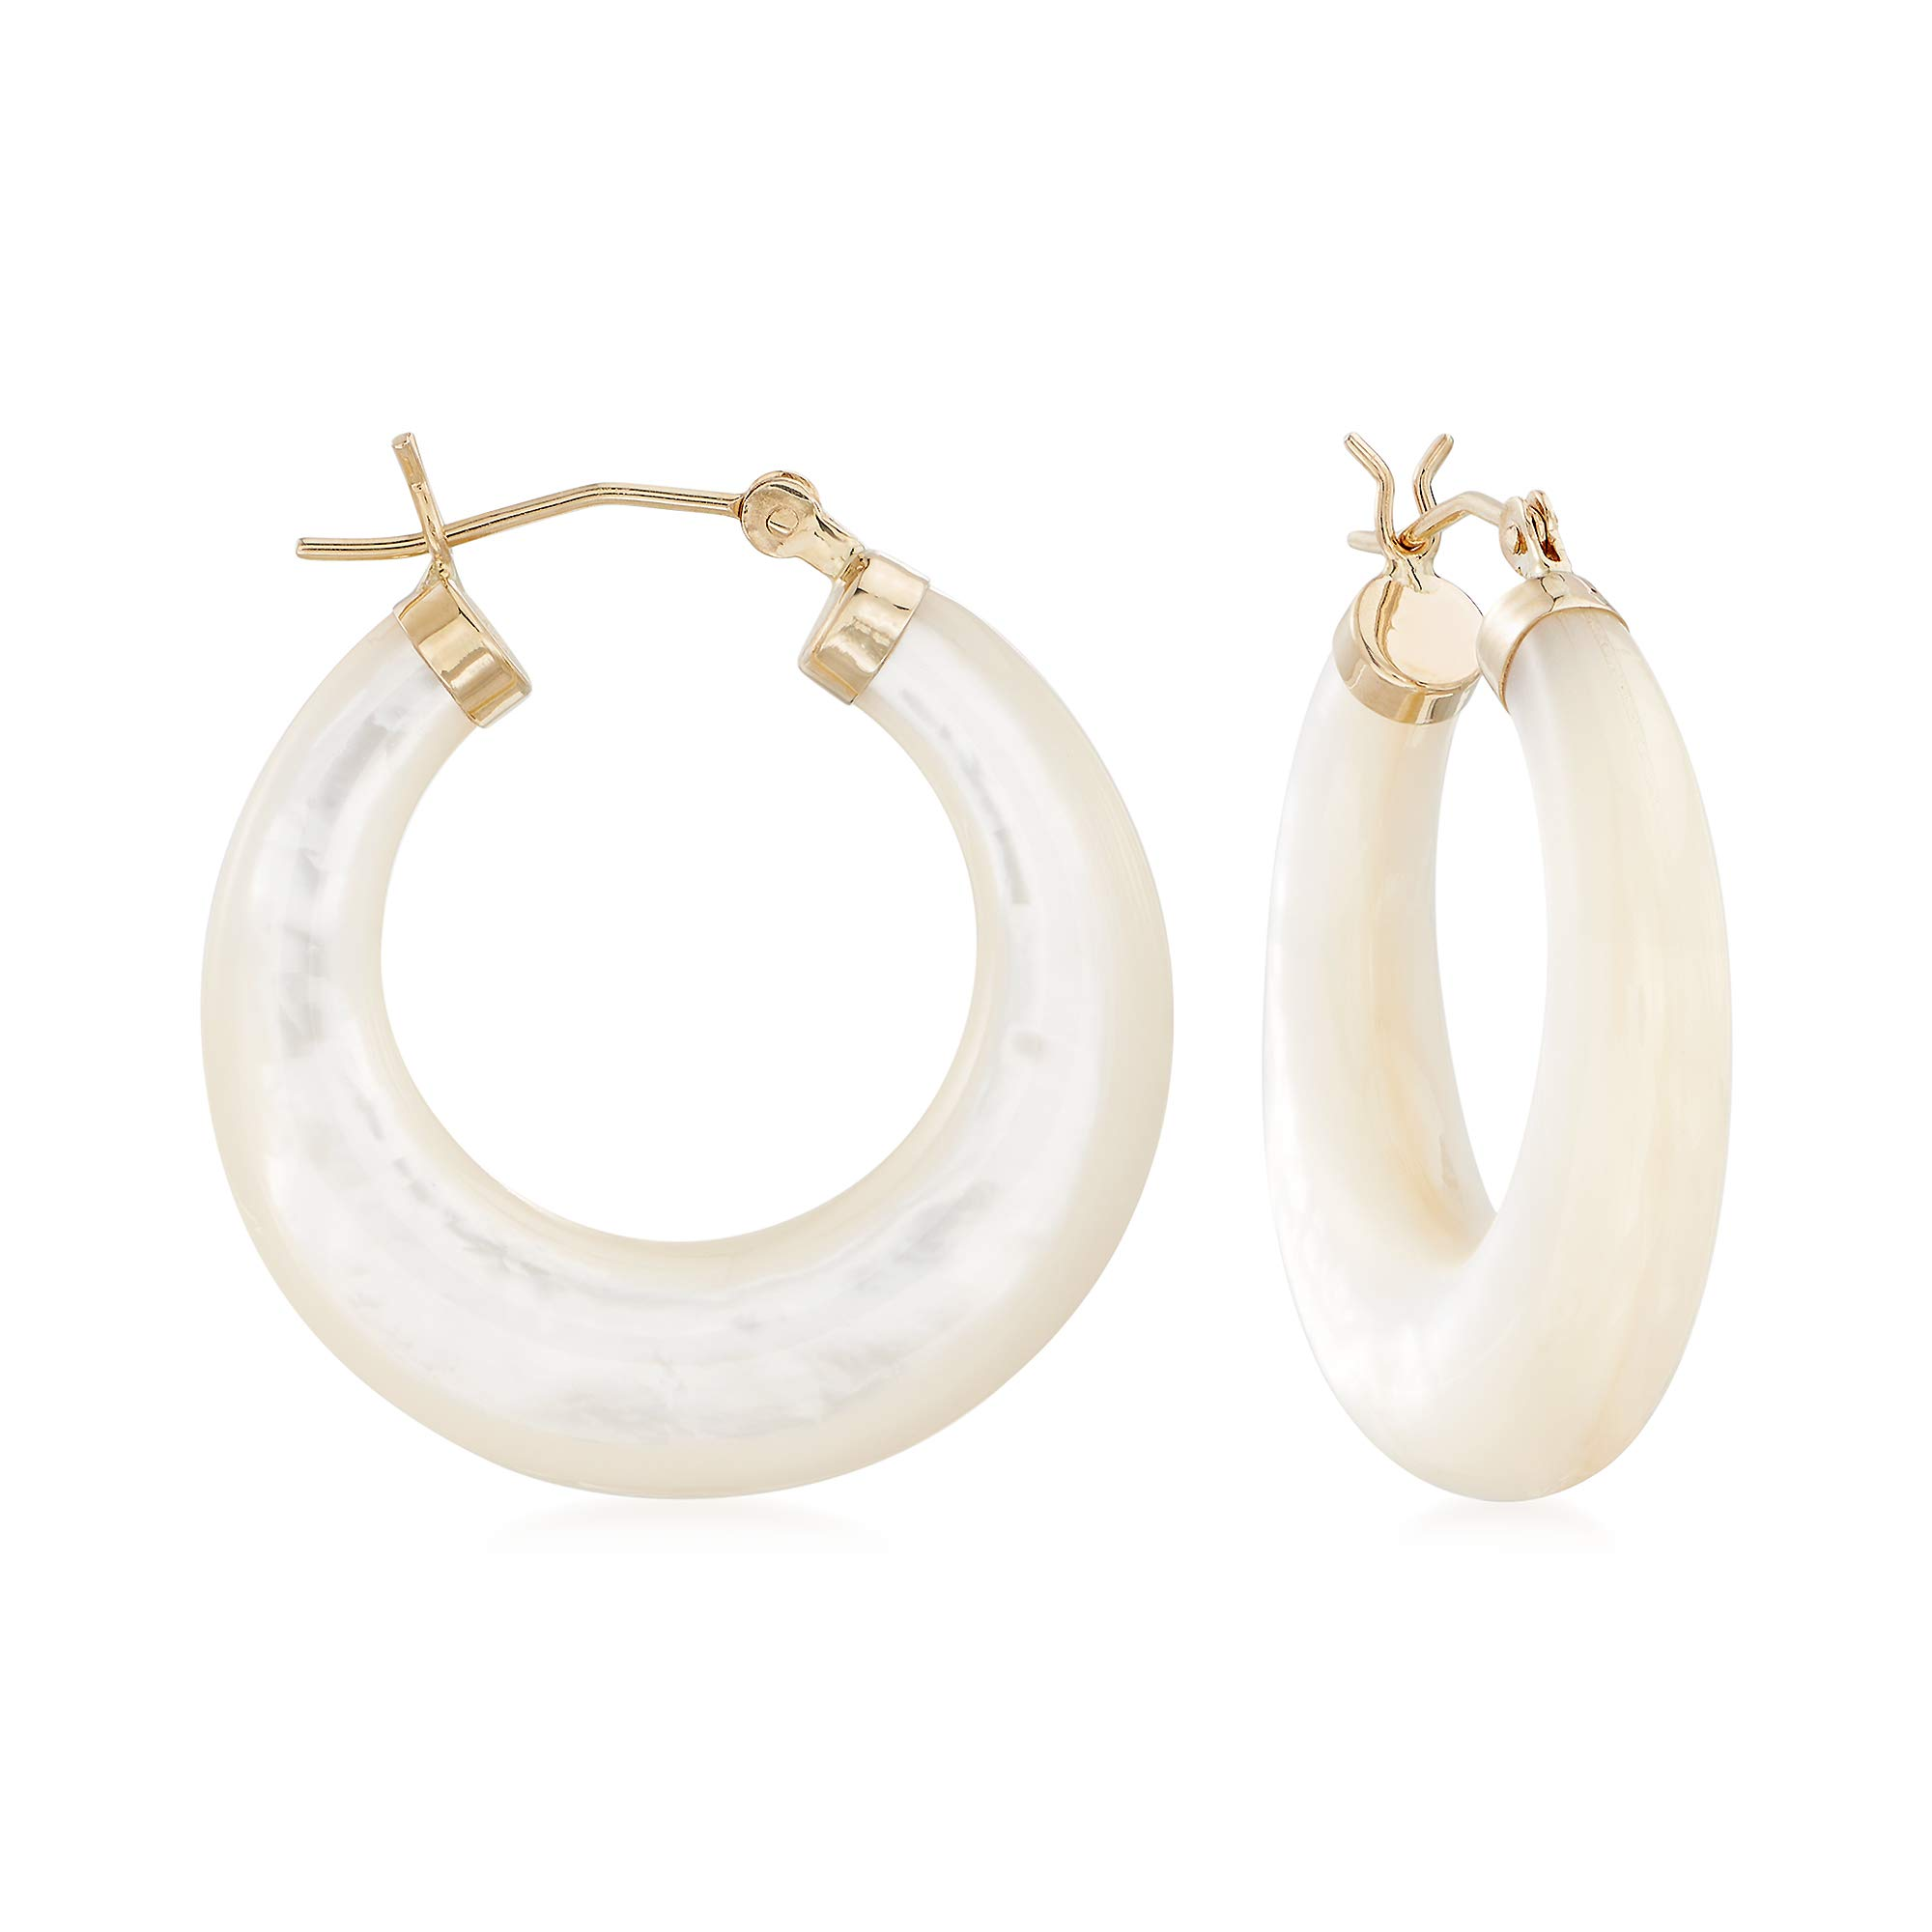 Ross-Simons Mother-Of-Pearl Hoop Earrings in 14kt Yellow Gold